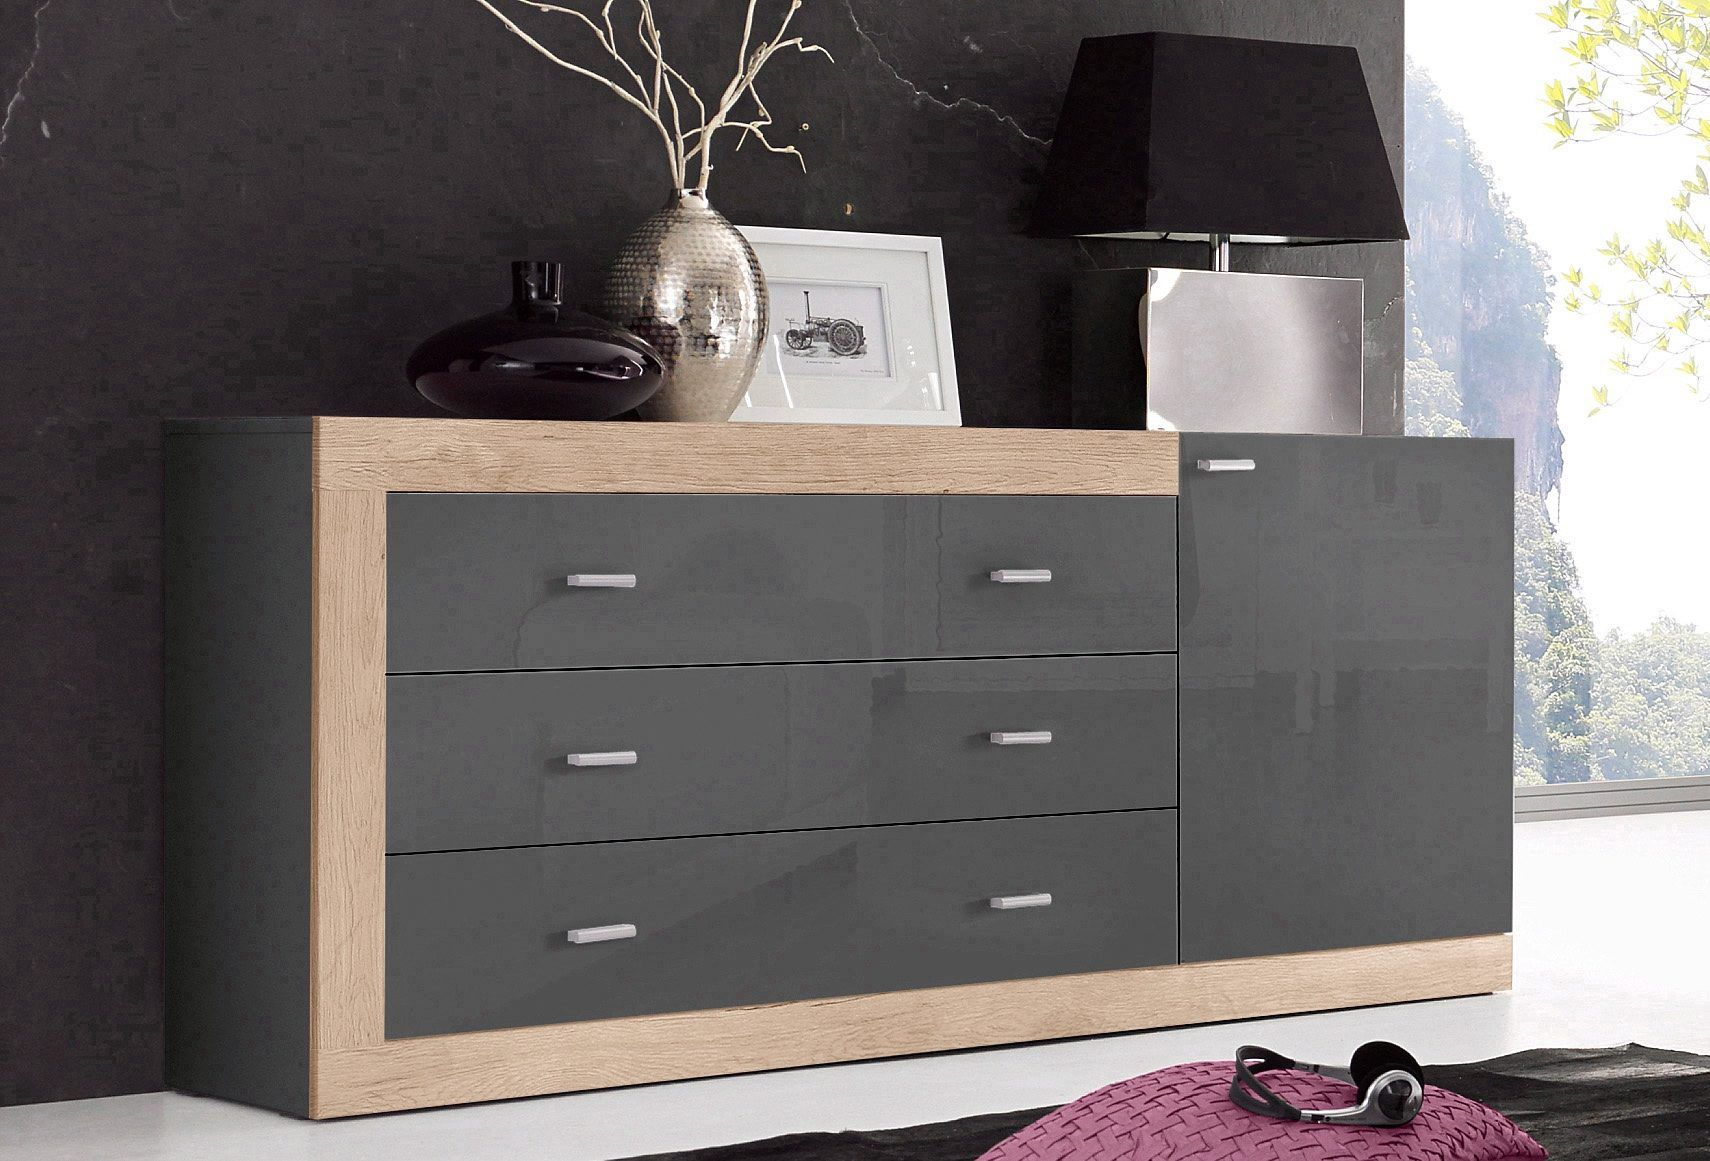 Sideboards Lugano Sideboard Braun Walnuss Interior Sideboard Grau Hochglanz Interesting Highboard Hochglanz